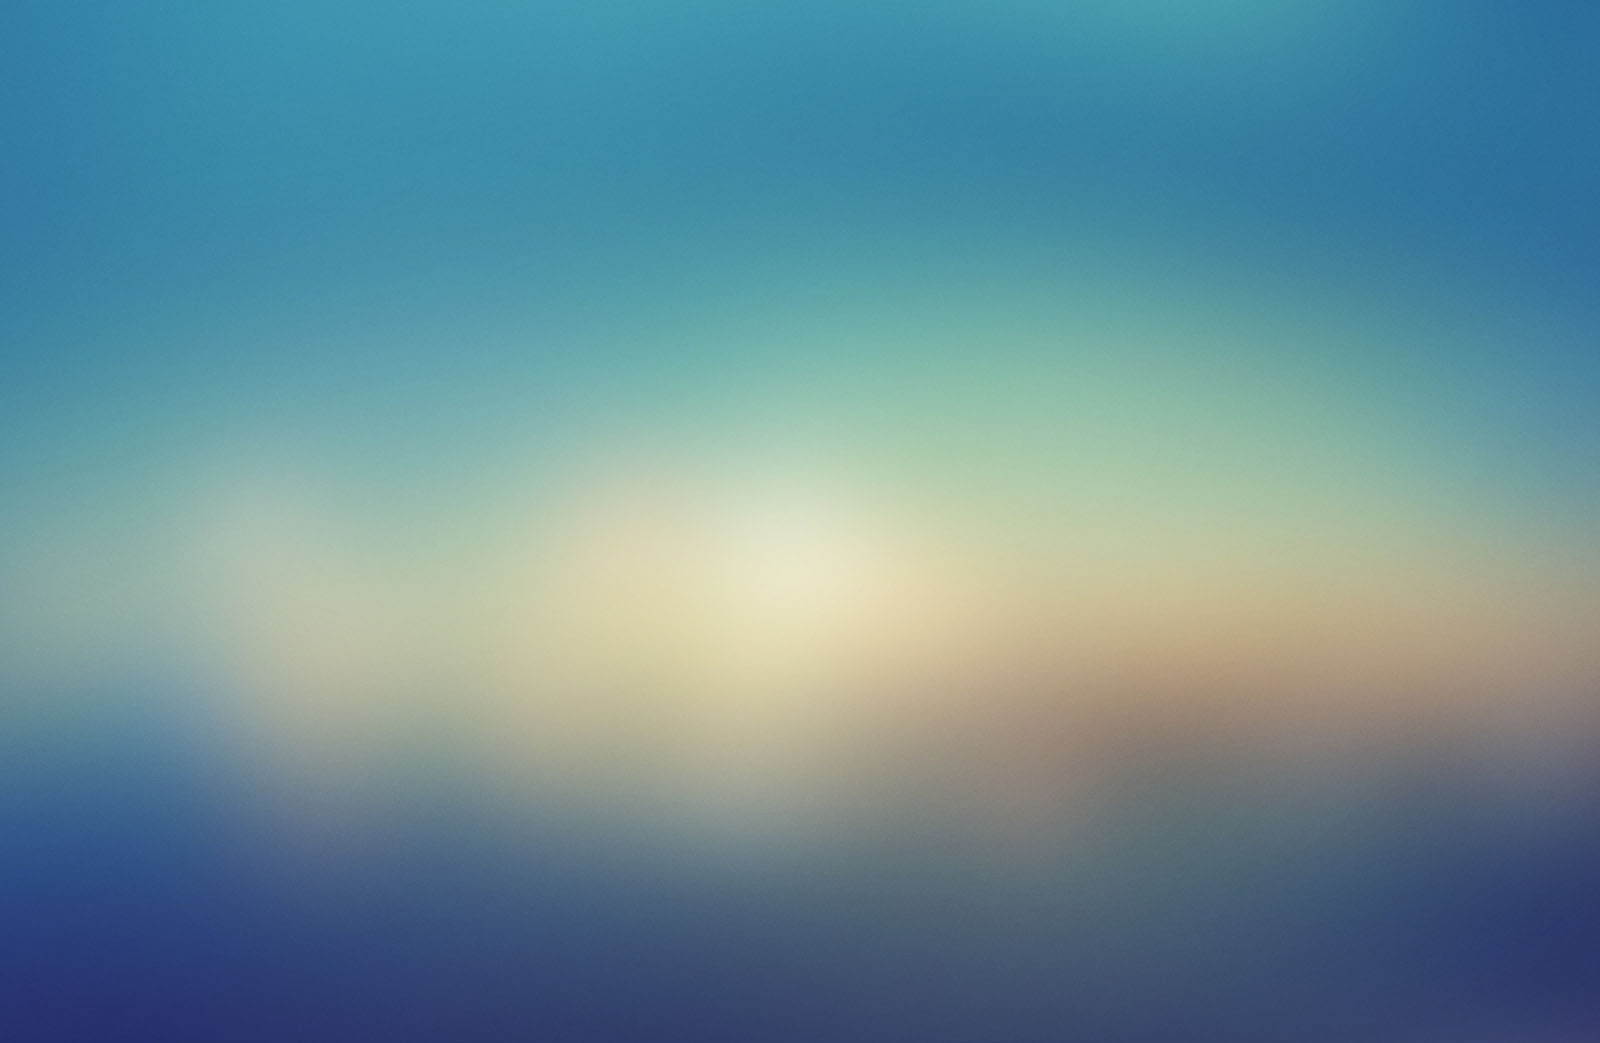 Background image yahoo mail - Abstract Wallpapers